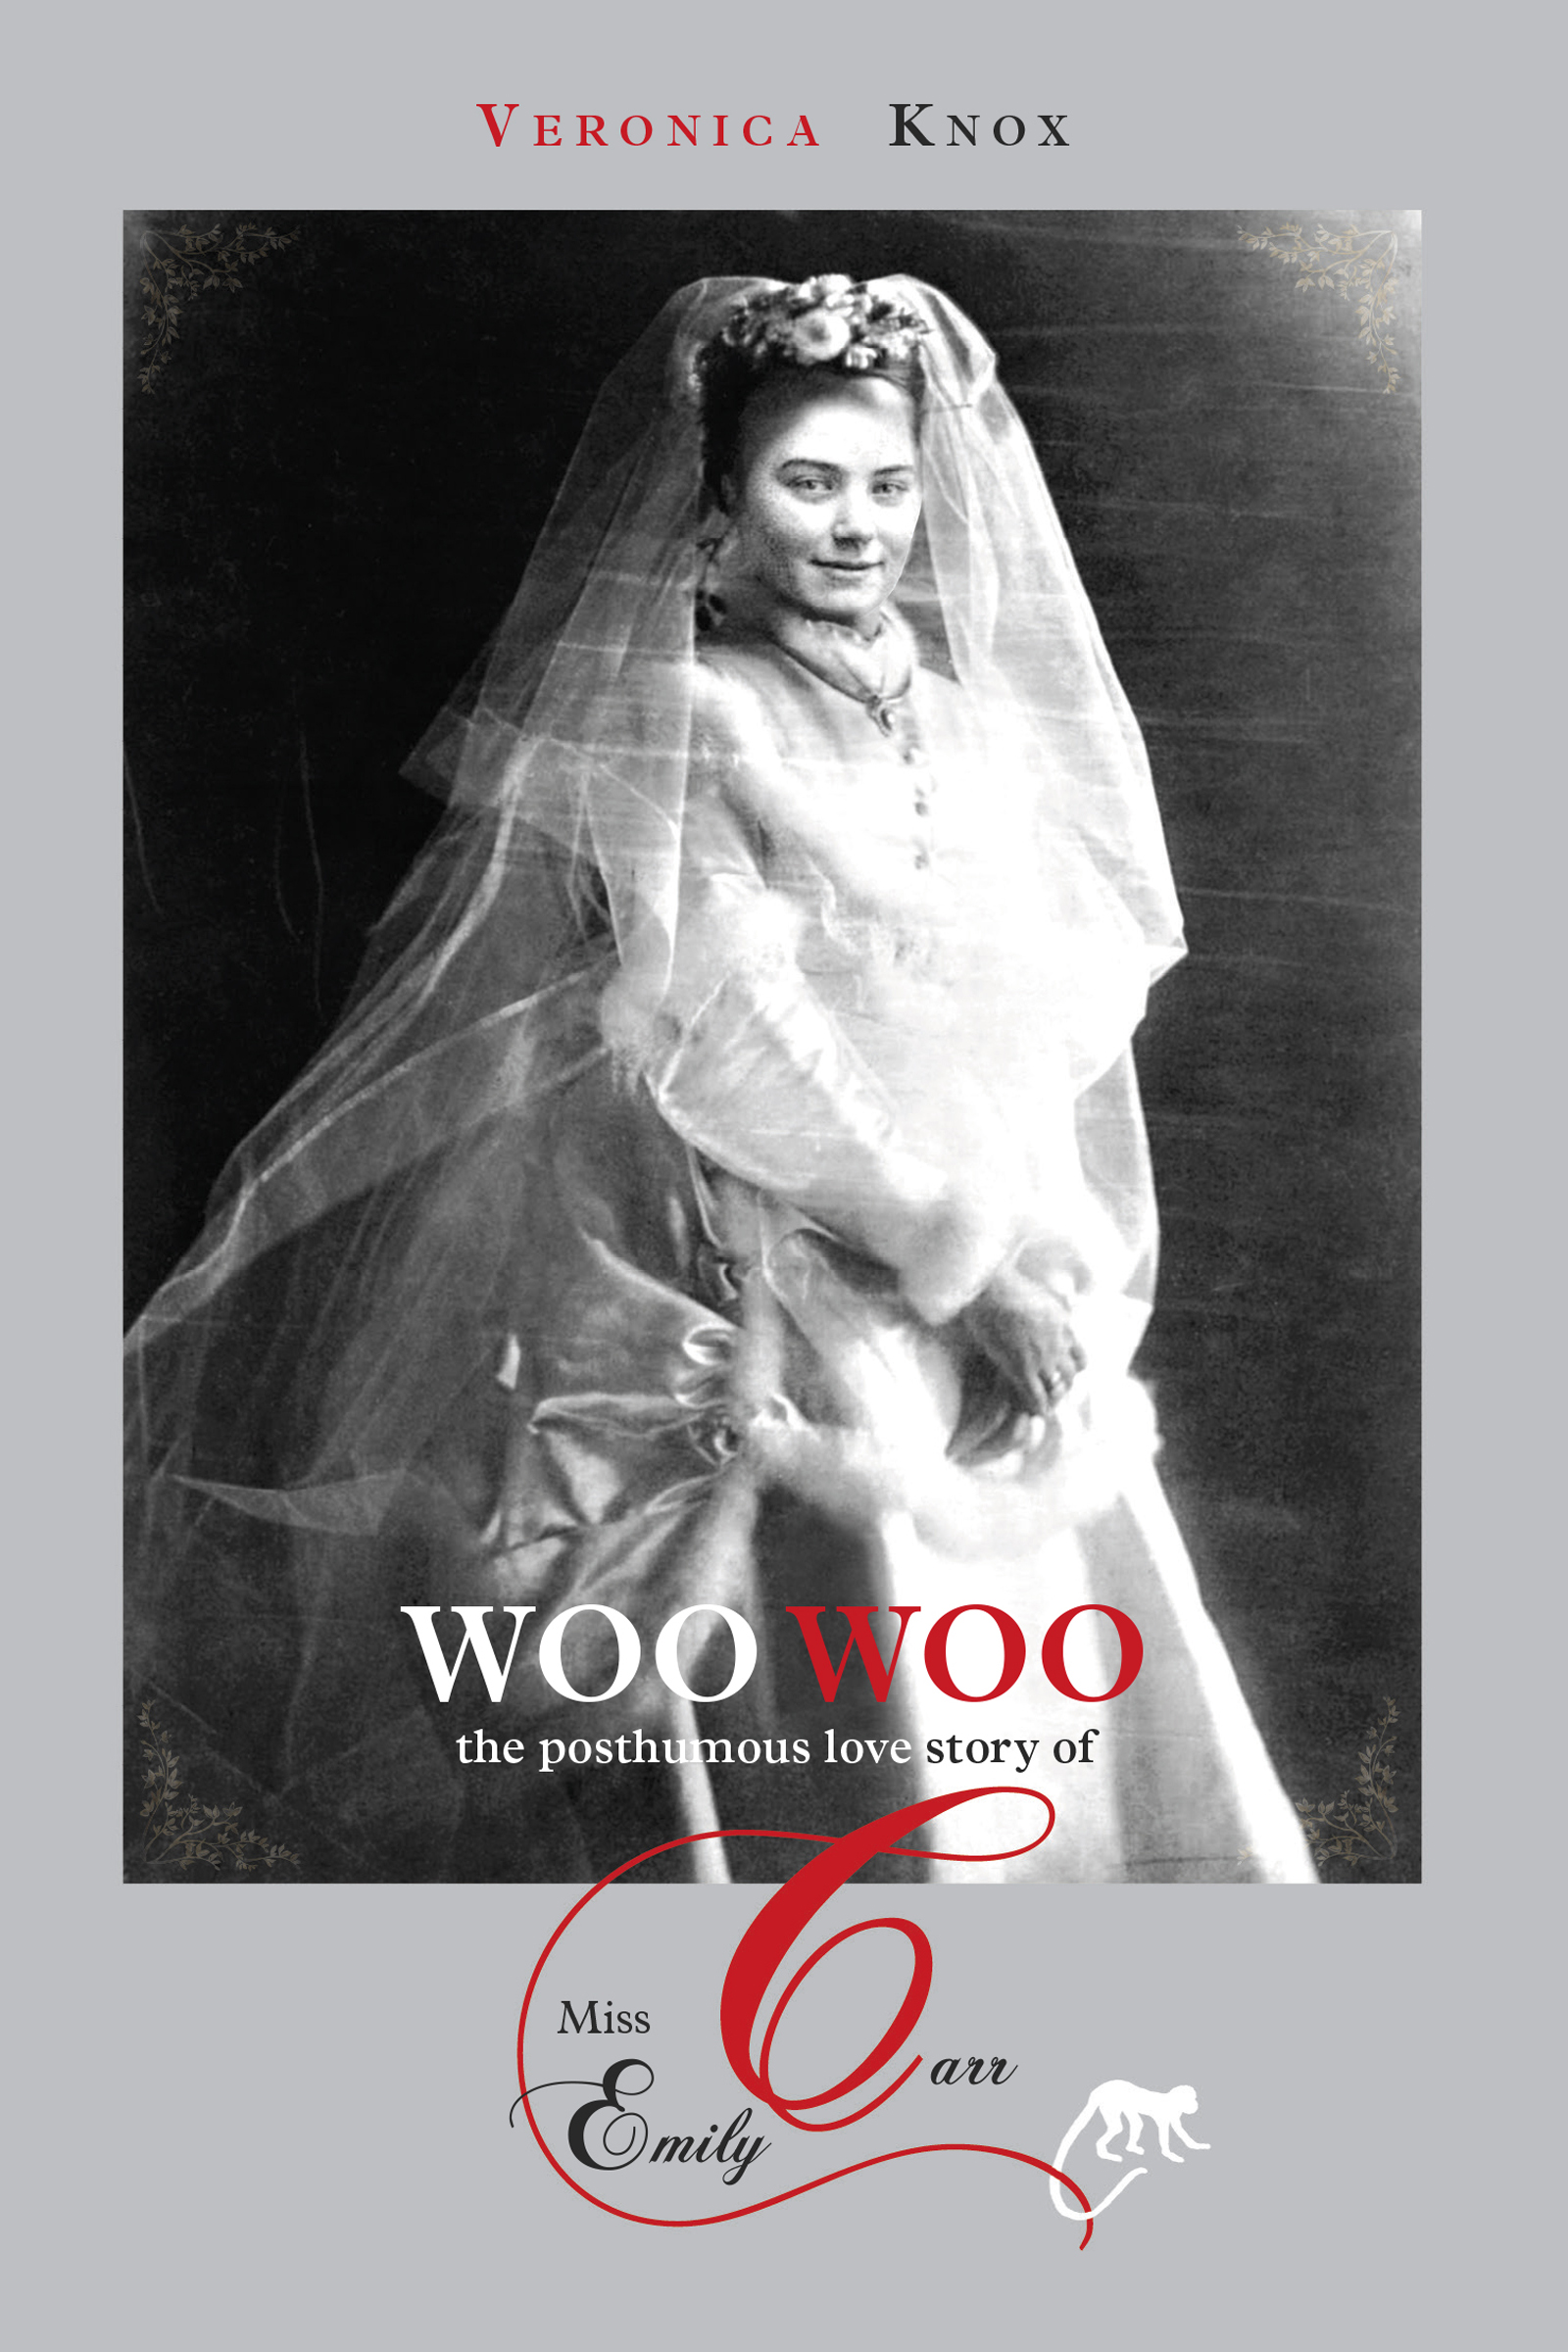 Woo Woo: The Posthumous Love Story of Miss Emily Carr By: Veronica Knox